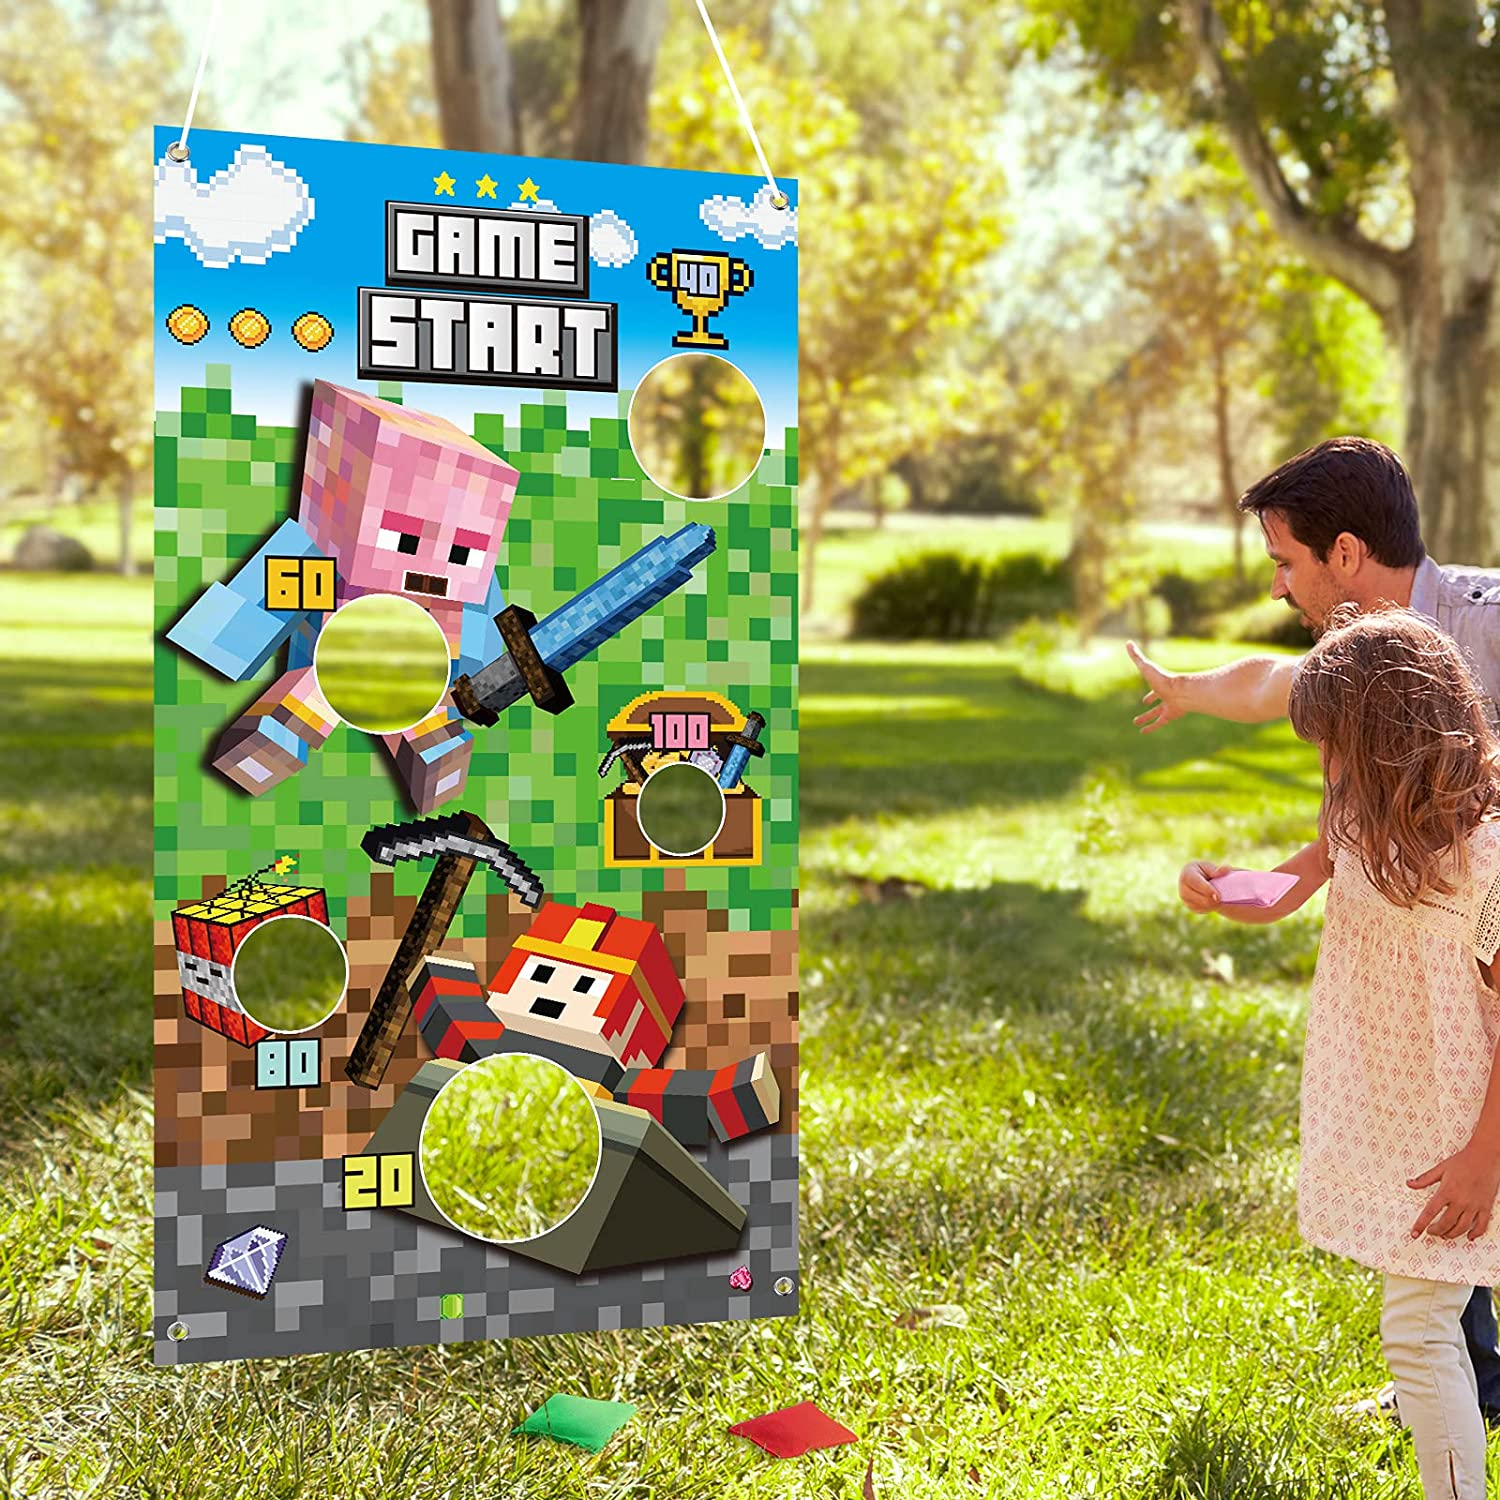 Toss Games Kit New product!! Includes 3 Bean 1 Throwing Soldering Bags Banne Pixel